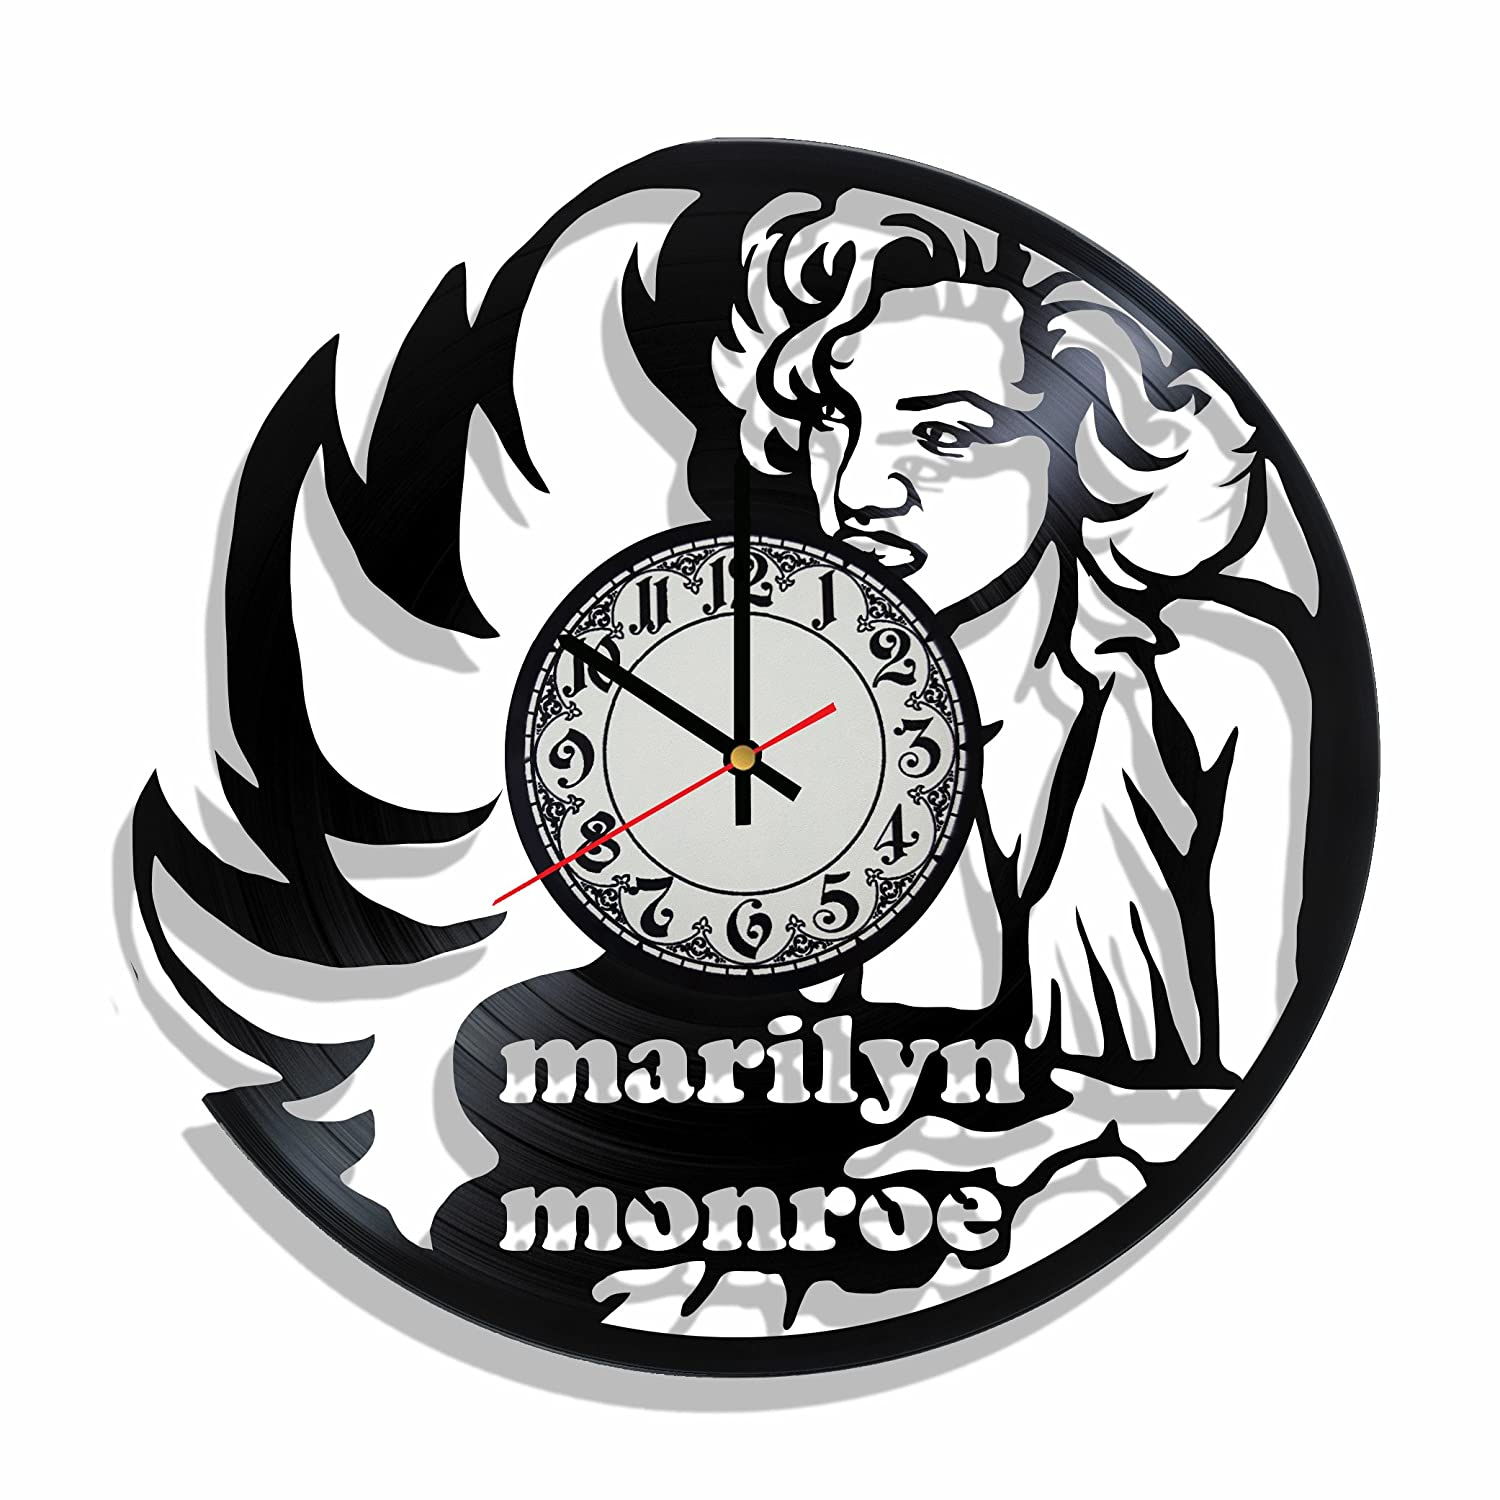 Amazon.com: Original vinyl wall clock Marilyn Monroe made from real vinyl record, Marilyn Monroe decal, Marilyn Monroe wall poster (white): Home & Kitchen